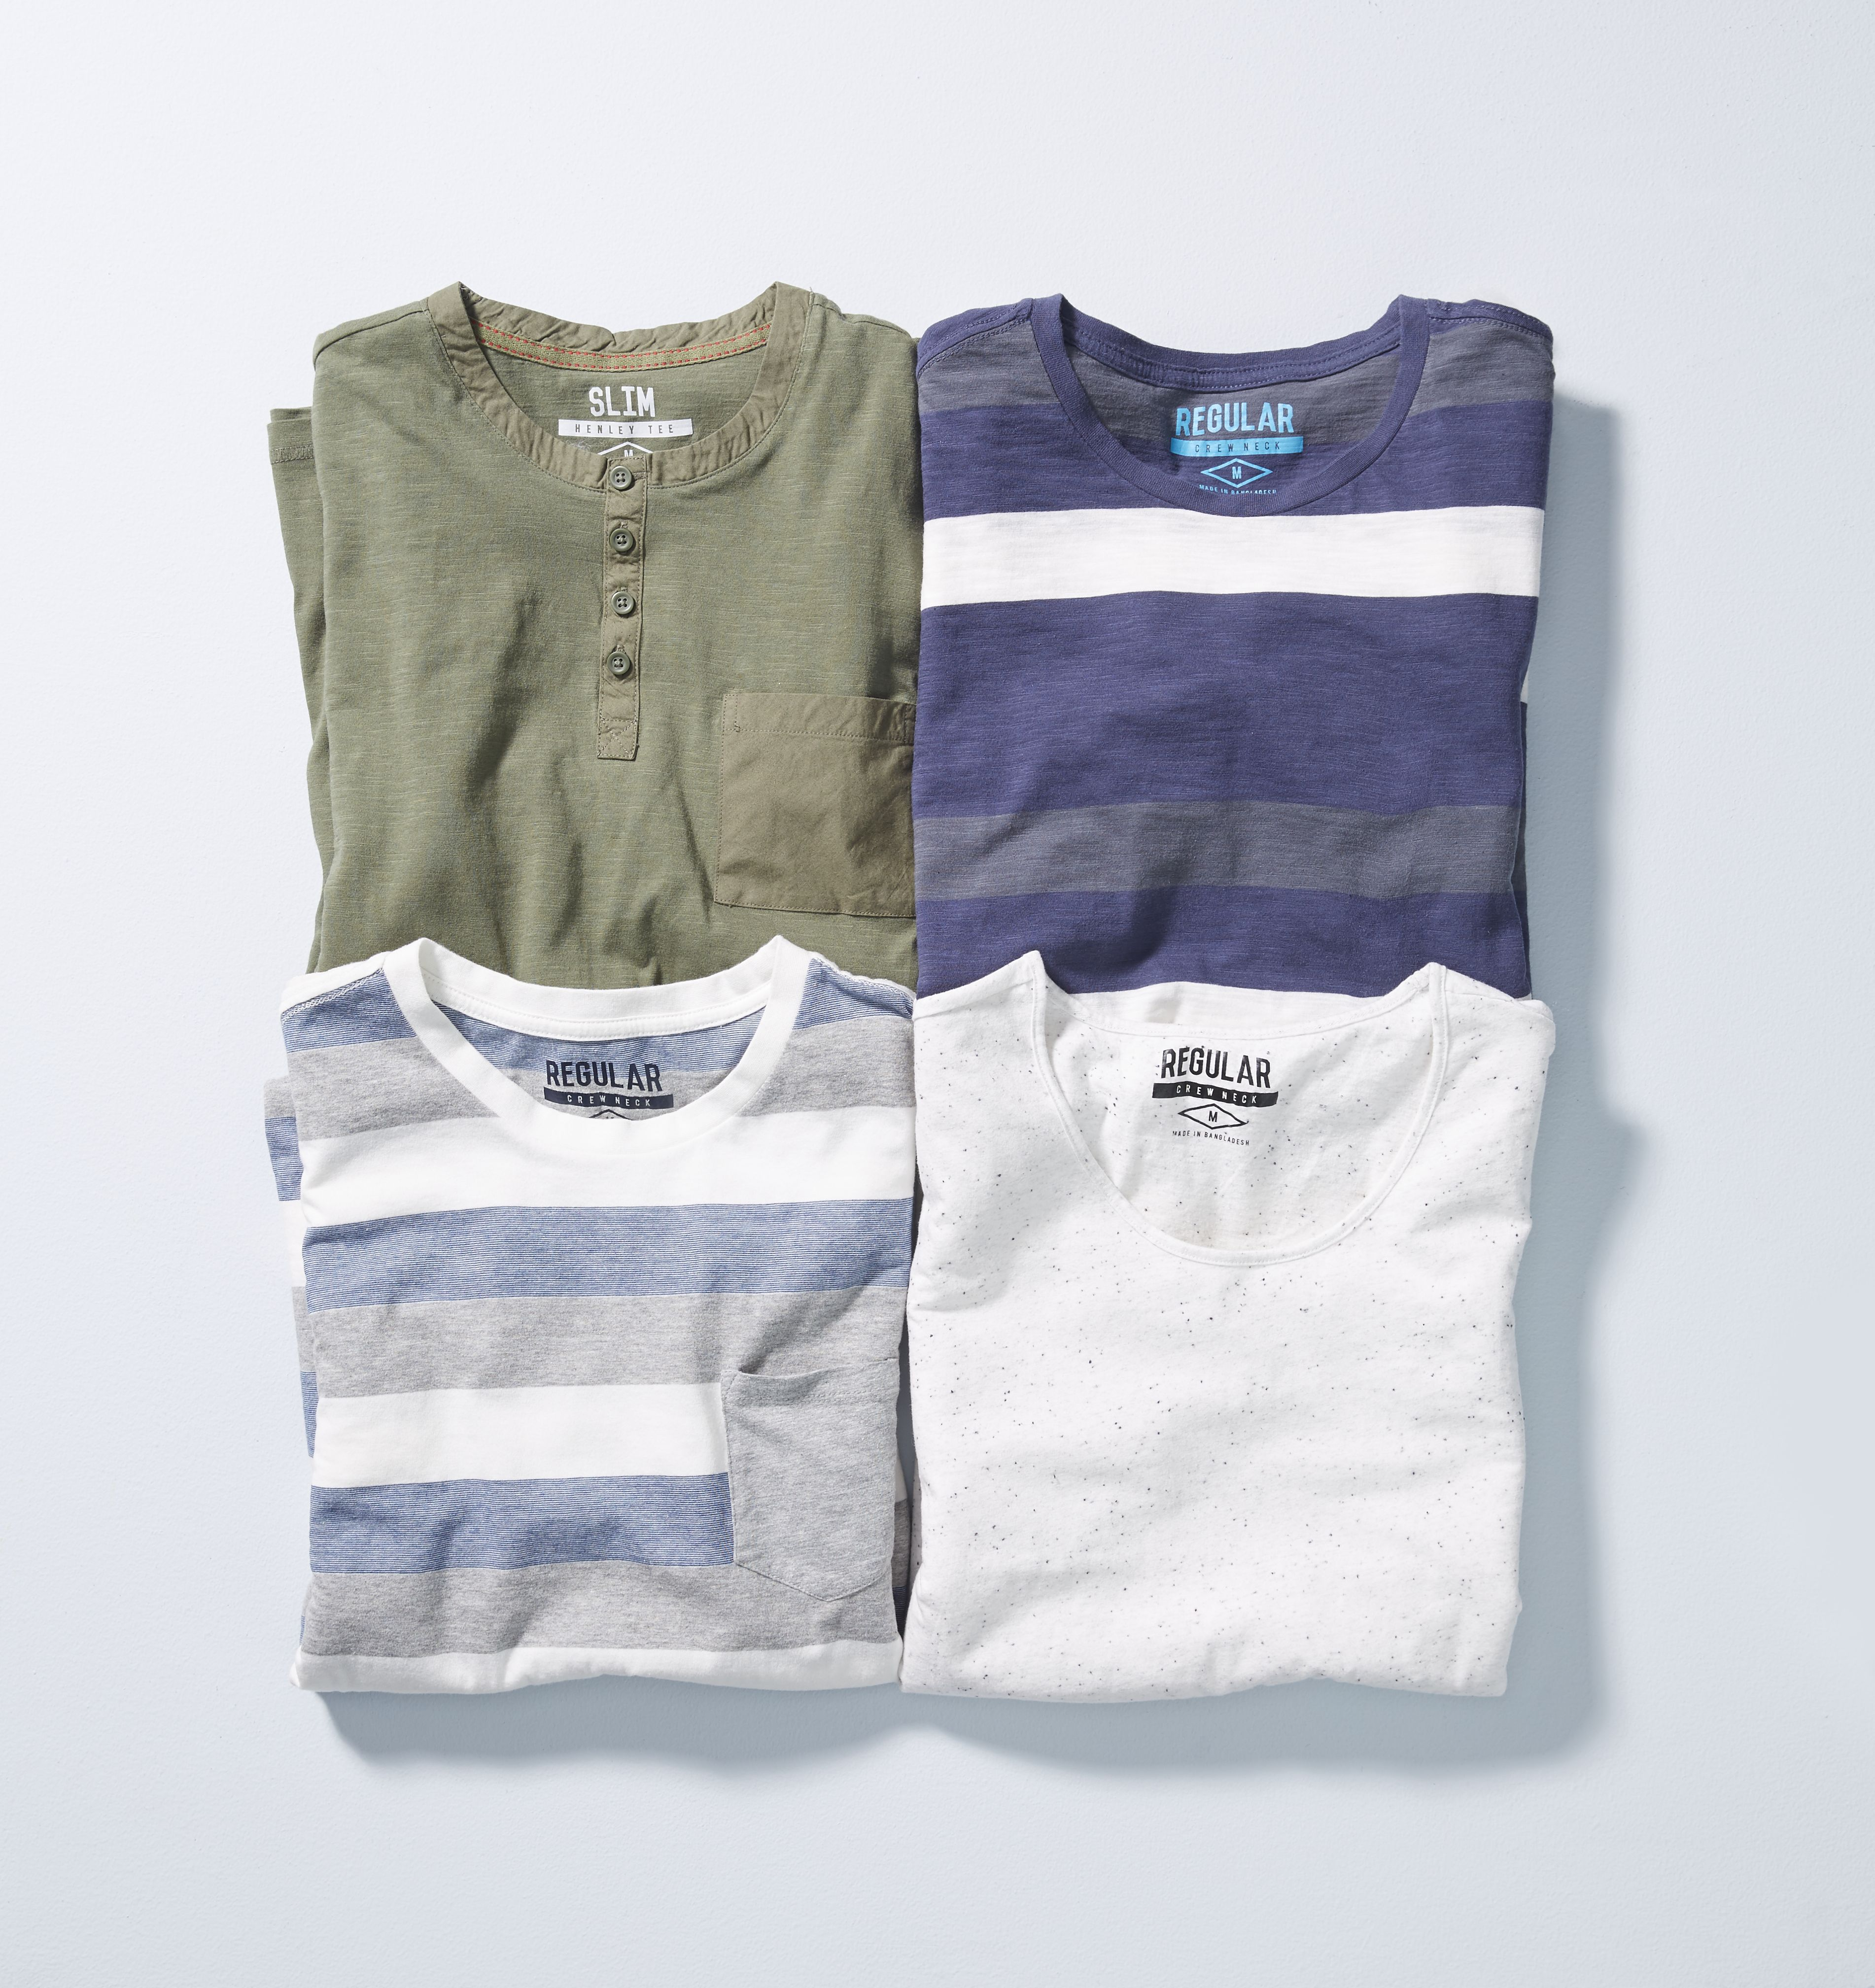 Kmart Men's Cotton Blend Tee, Size XS- 4XL, RRP$12ea